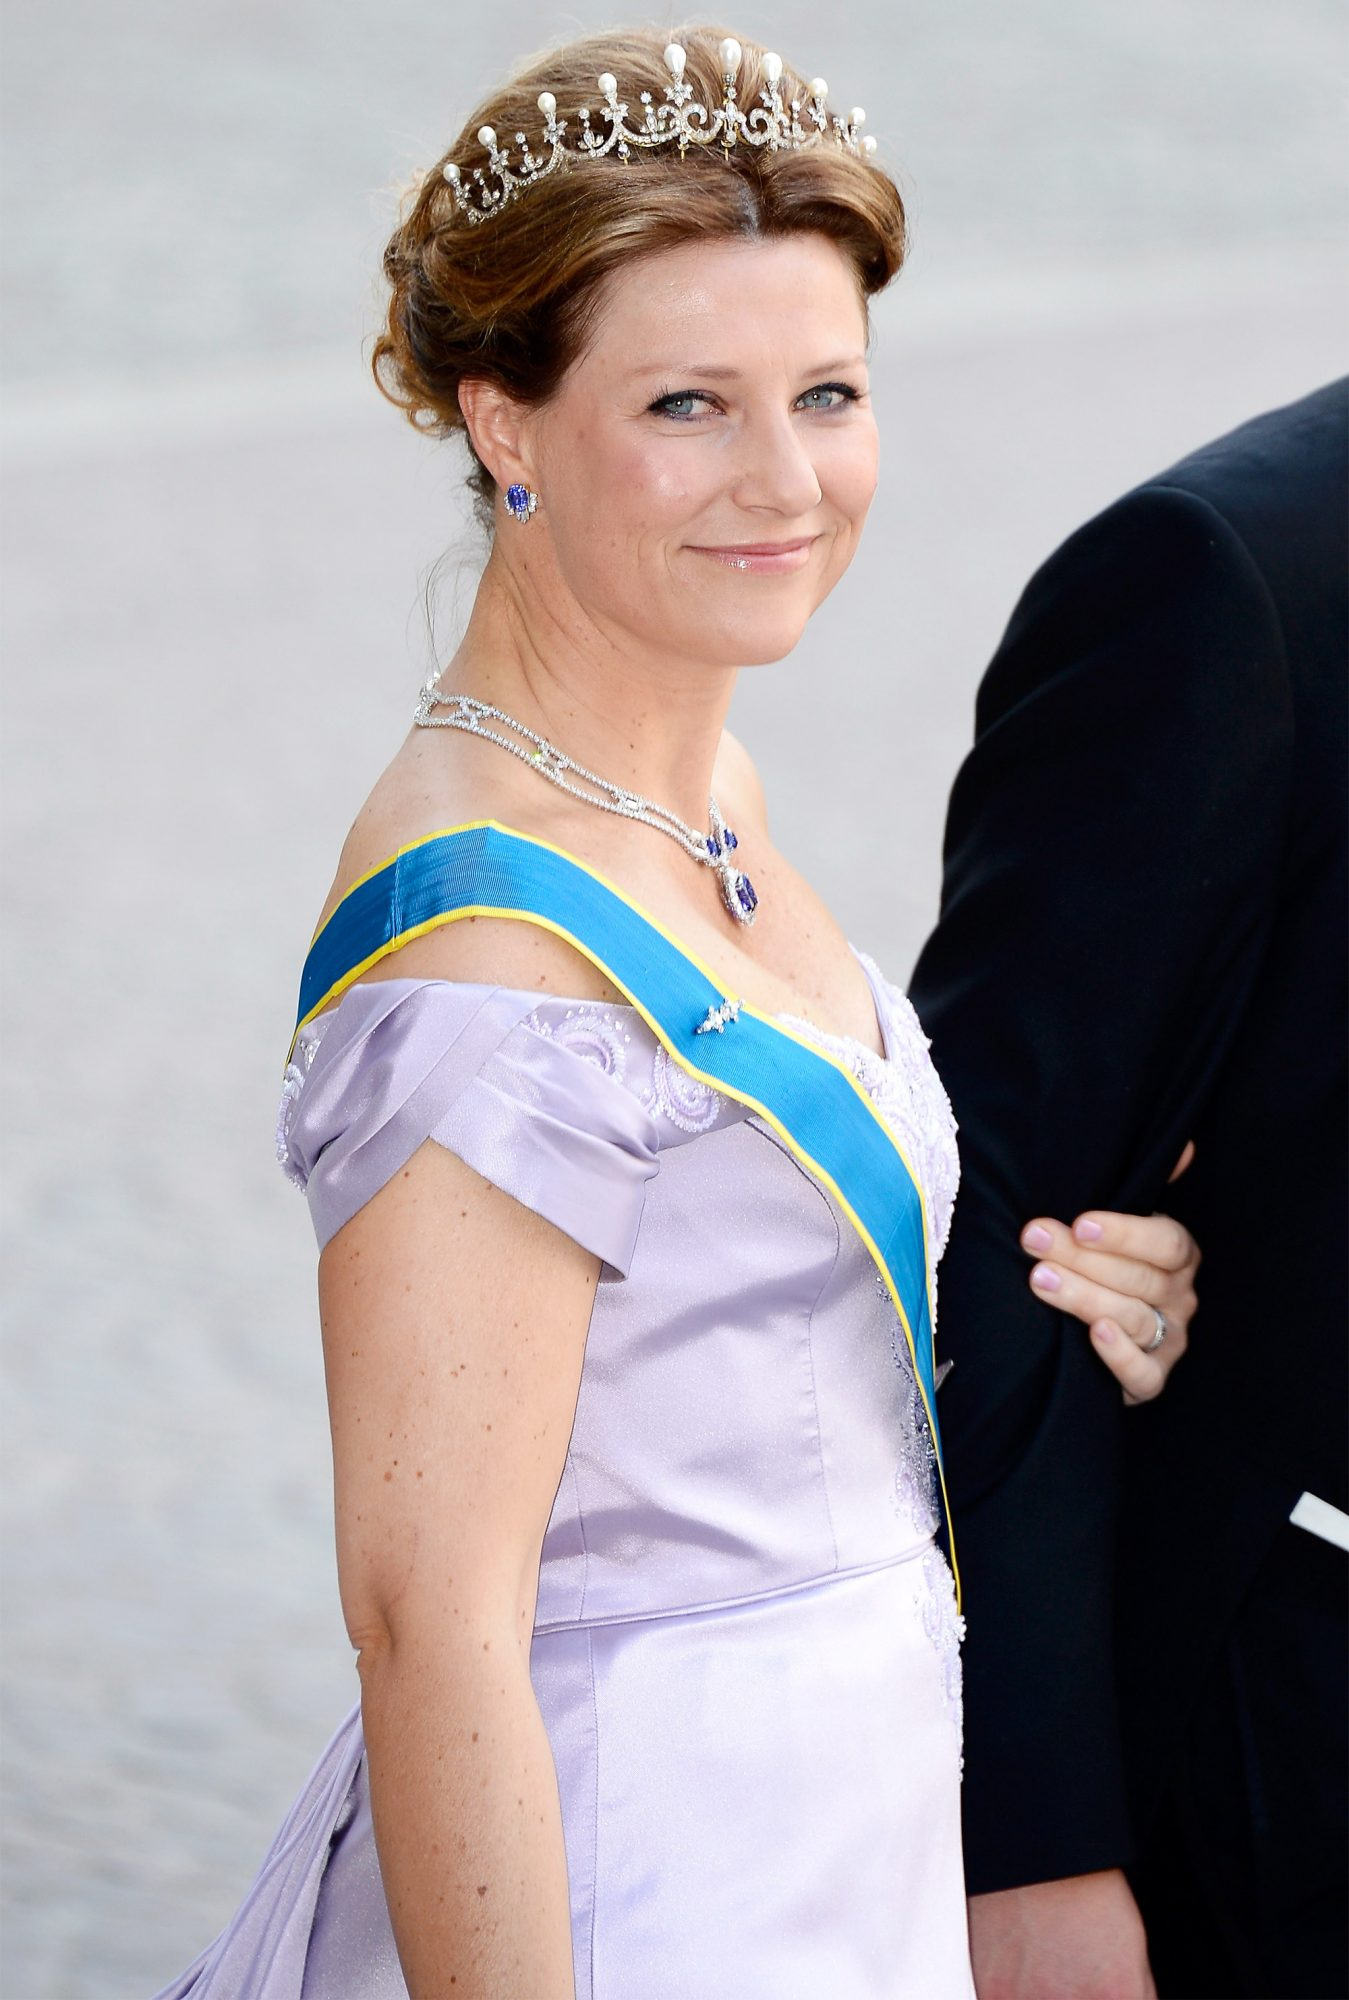 Why Princess Märtha Louise of Norway Is Ditching Her Royal Title After 'Discussions with Family'